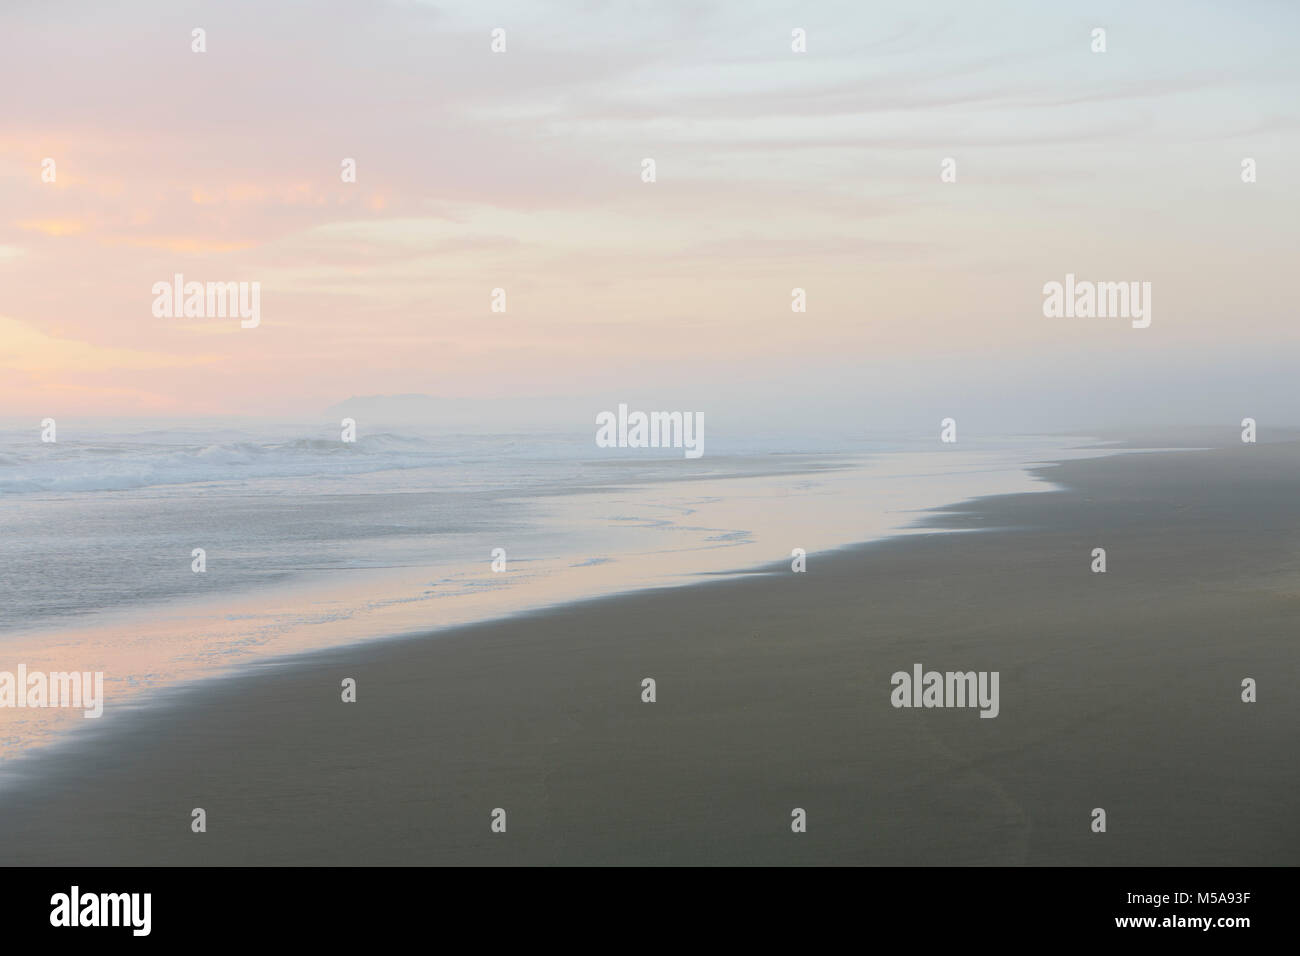 Landscape with sandy beach and ocean at sunset. - Stock Image